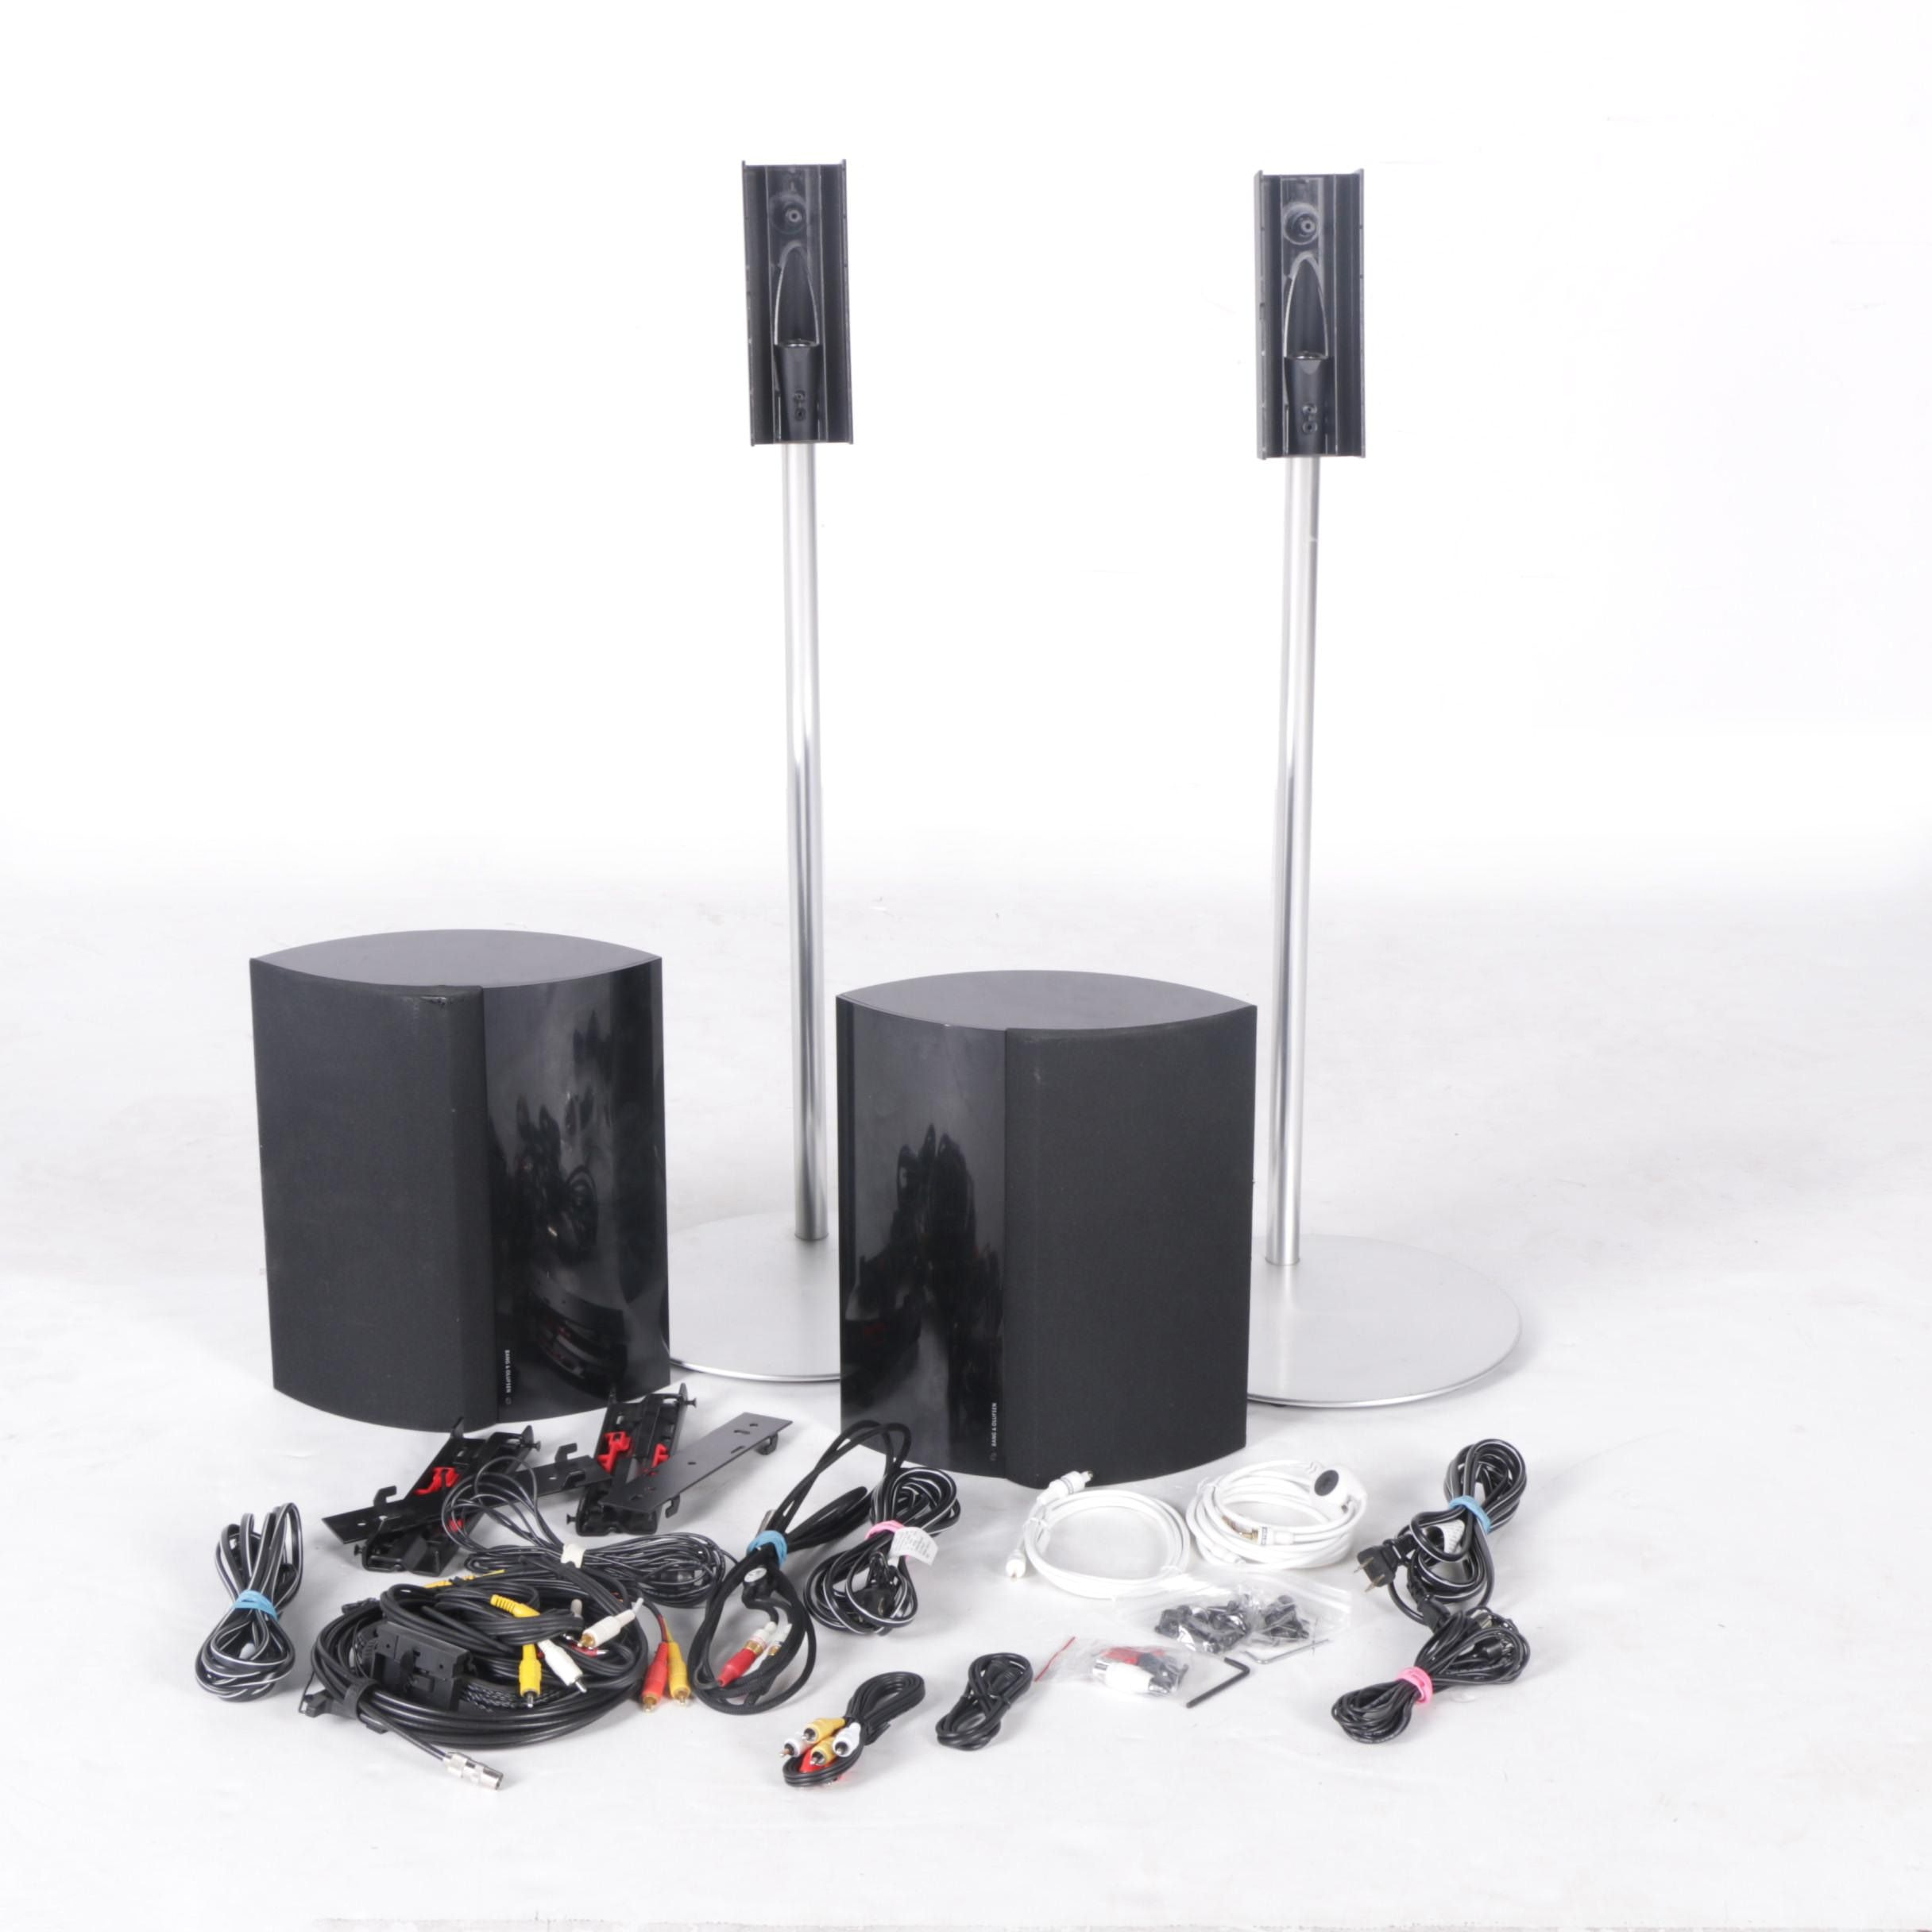 Bang & Olufsen Speakers with Stands and Cords